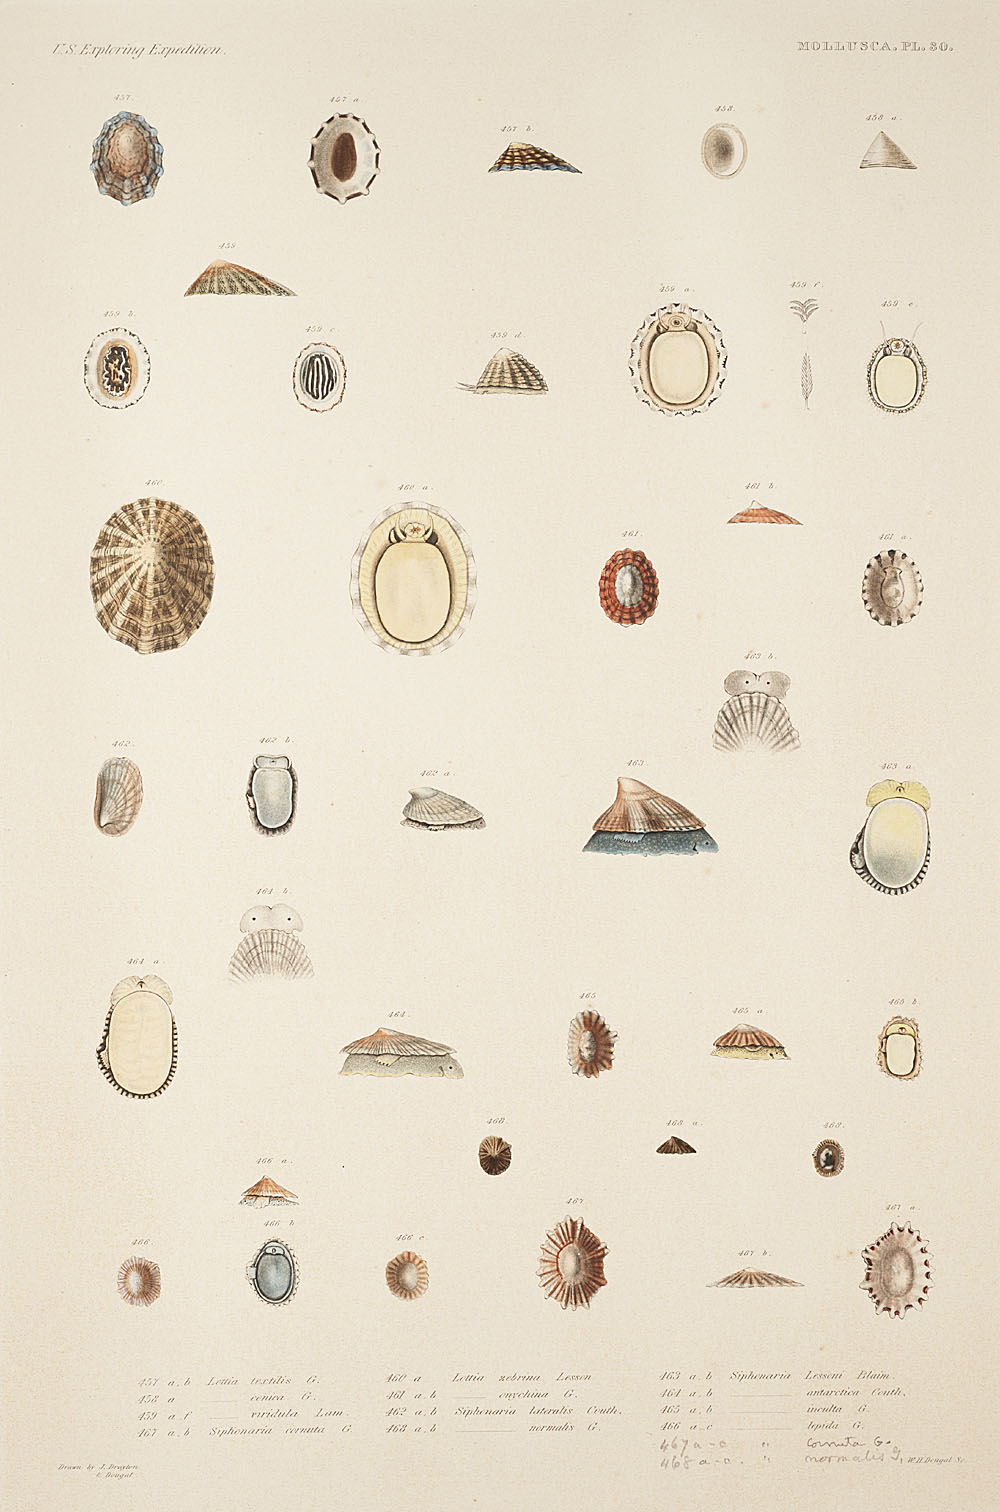 Mollusca, Pl. 30,  Image number:sil19-18-081b